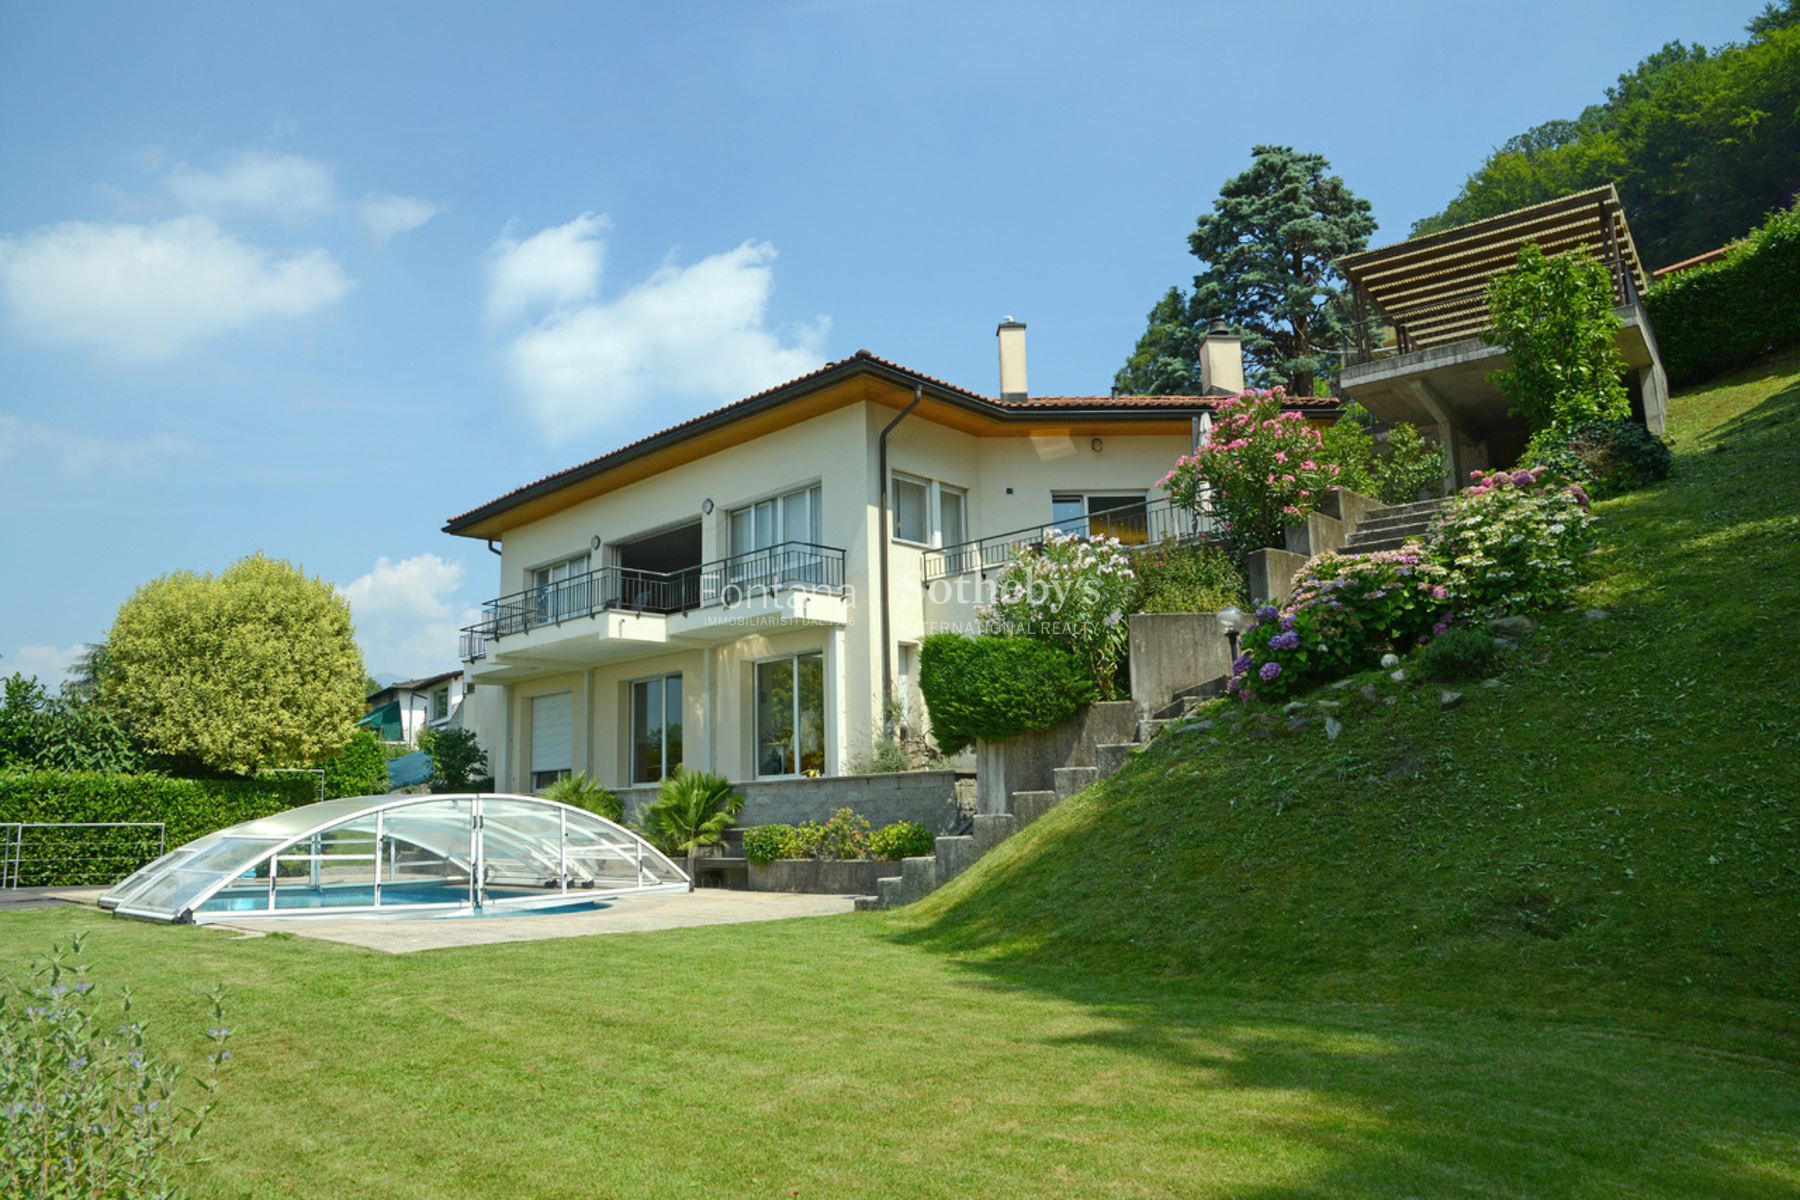 Single Family Home for Sale at Luxury villa set in an exclusive location Montagnola Montagnola, Ticino, 6926 Switzerland